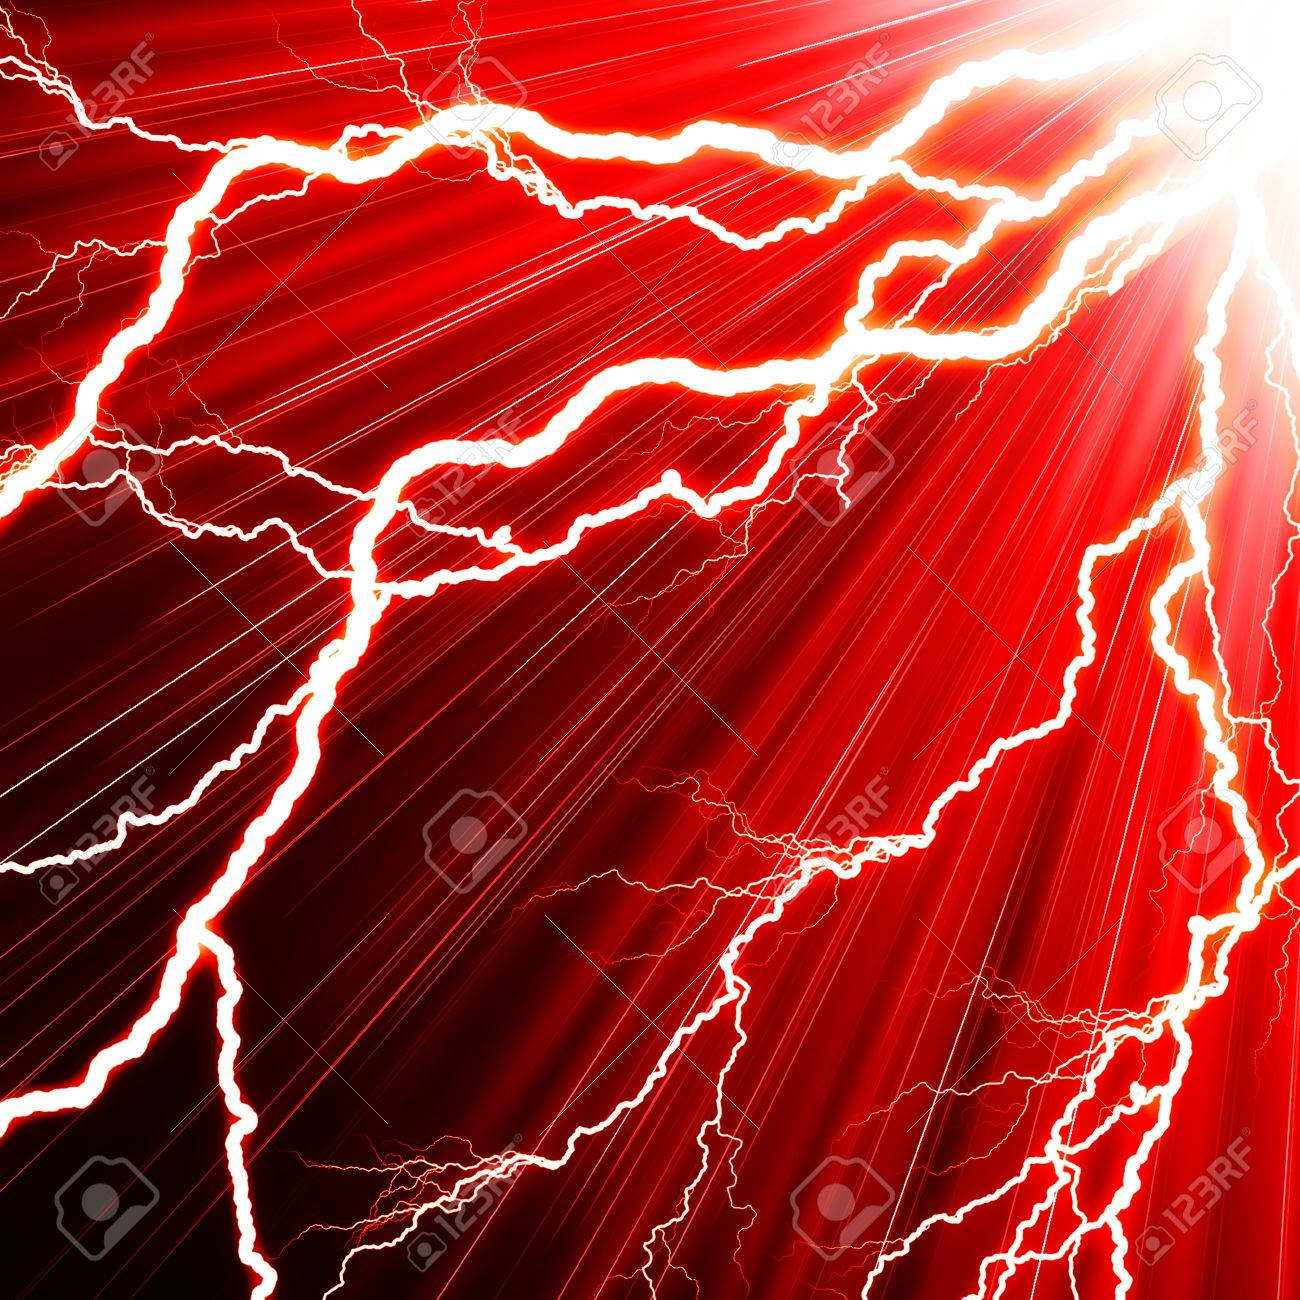 [Year of Evil] Flash Rises [LIBRE] 34170019-electric-flash-of-lightning-on-a-red-background